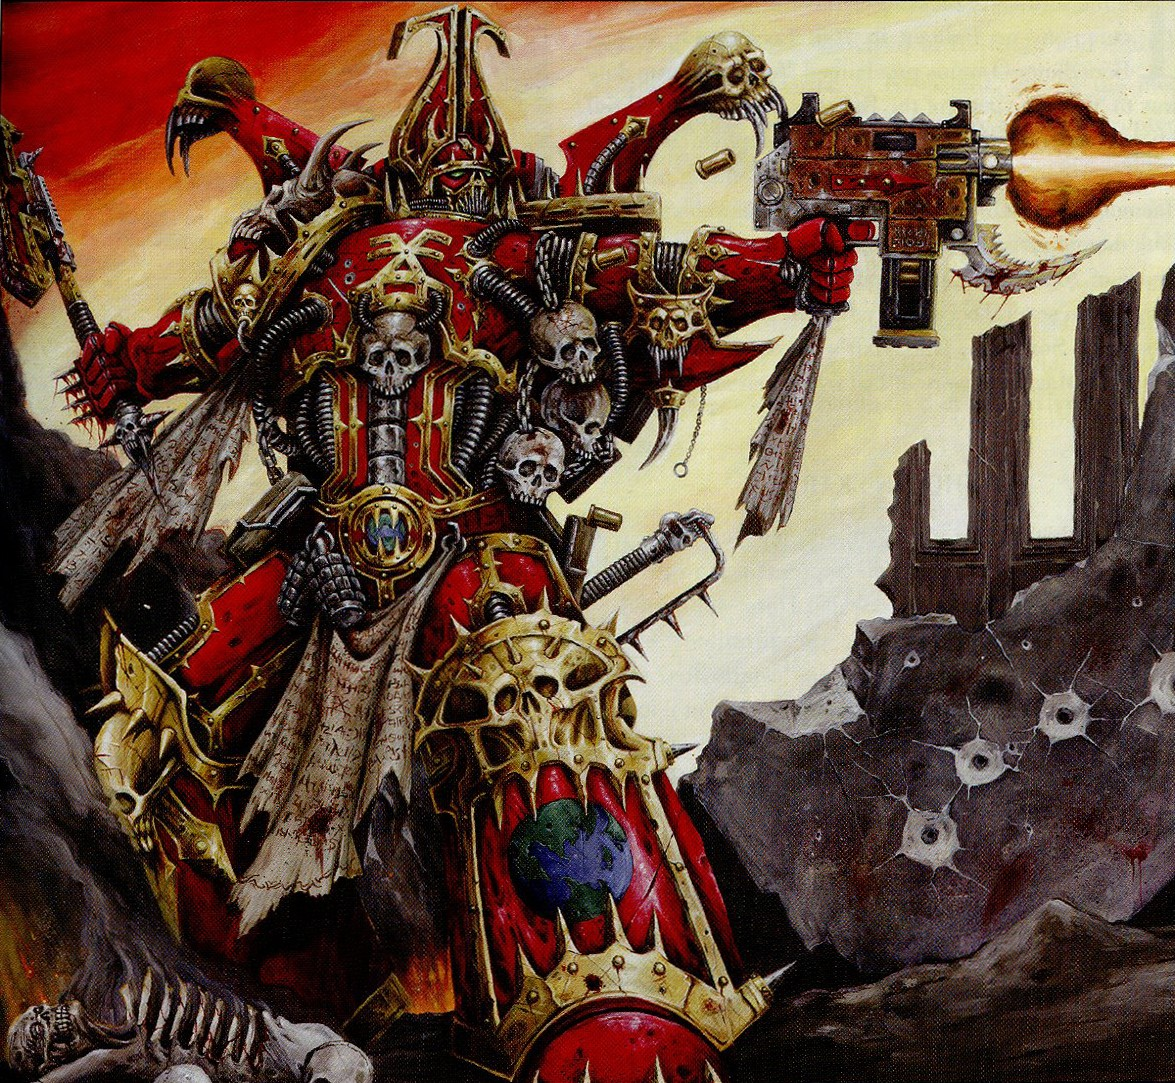 Warhammer 40k Chaos Space Marines: CHAOS Space Marines Army Fans